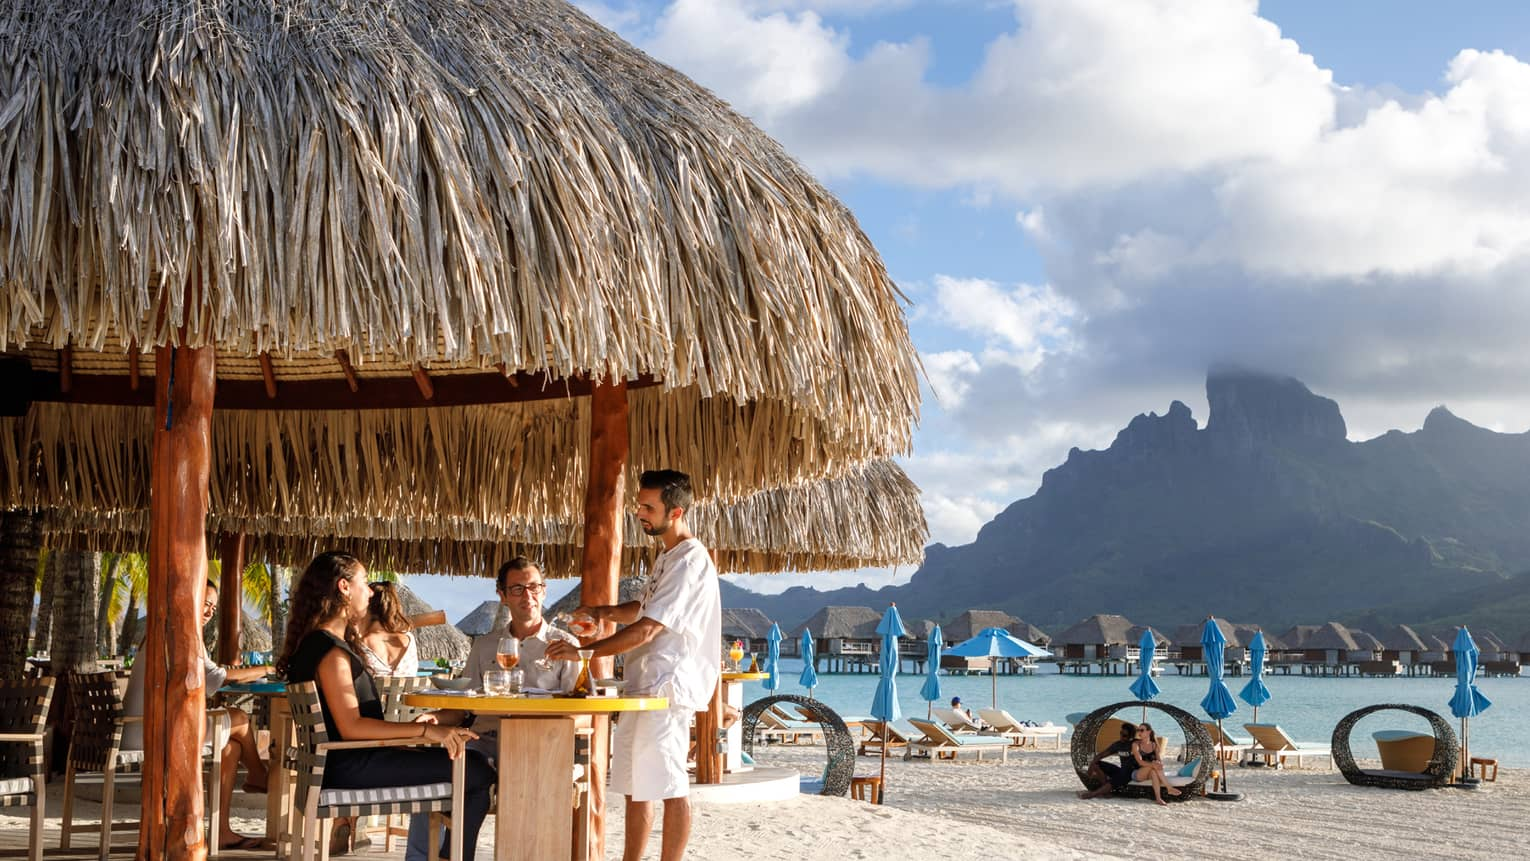 Couple seated in bar under grass roof on beach, view of people in personal cabanas, mountain view